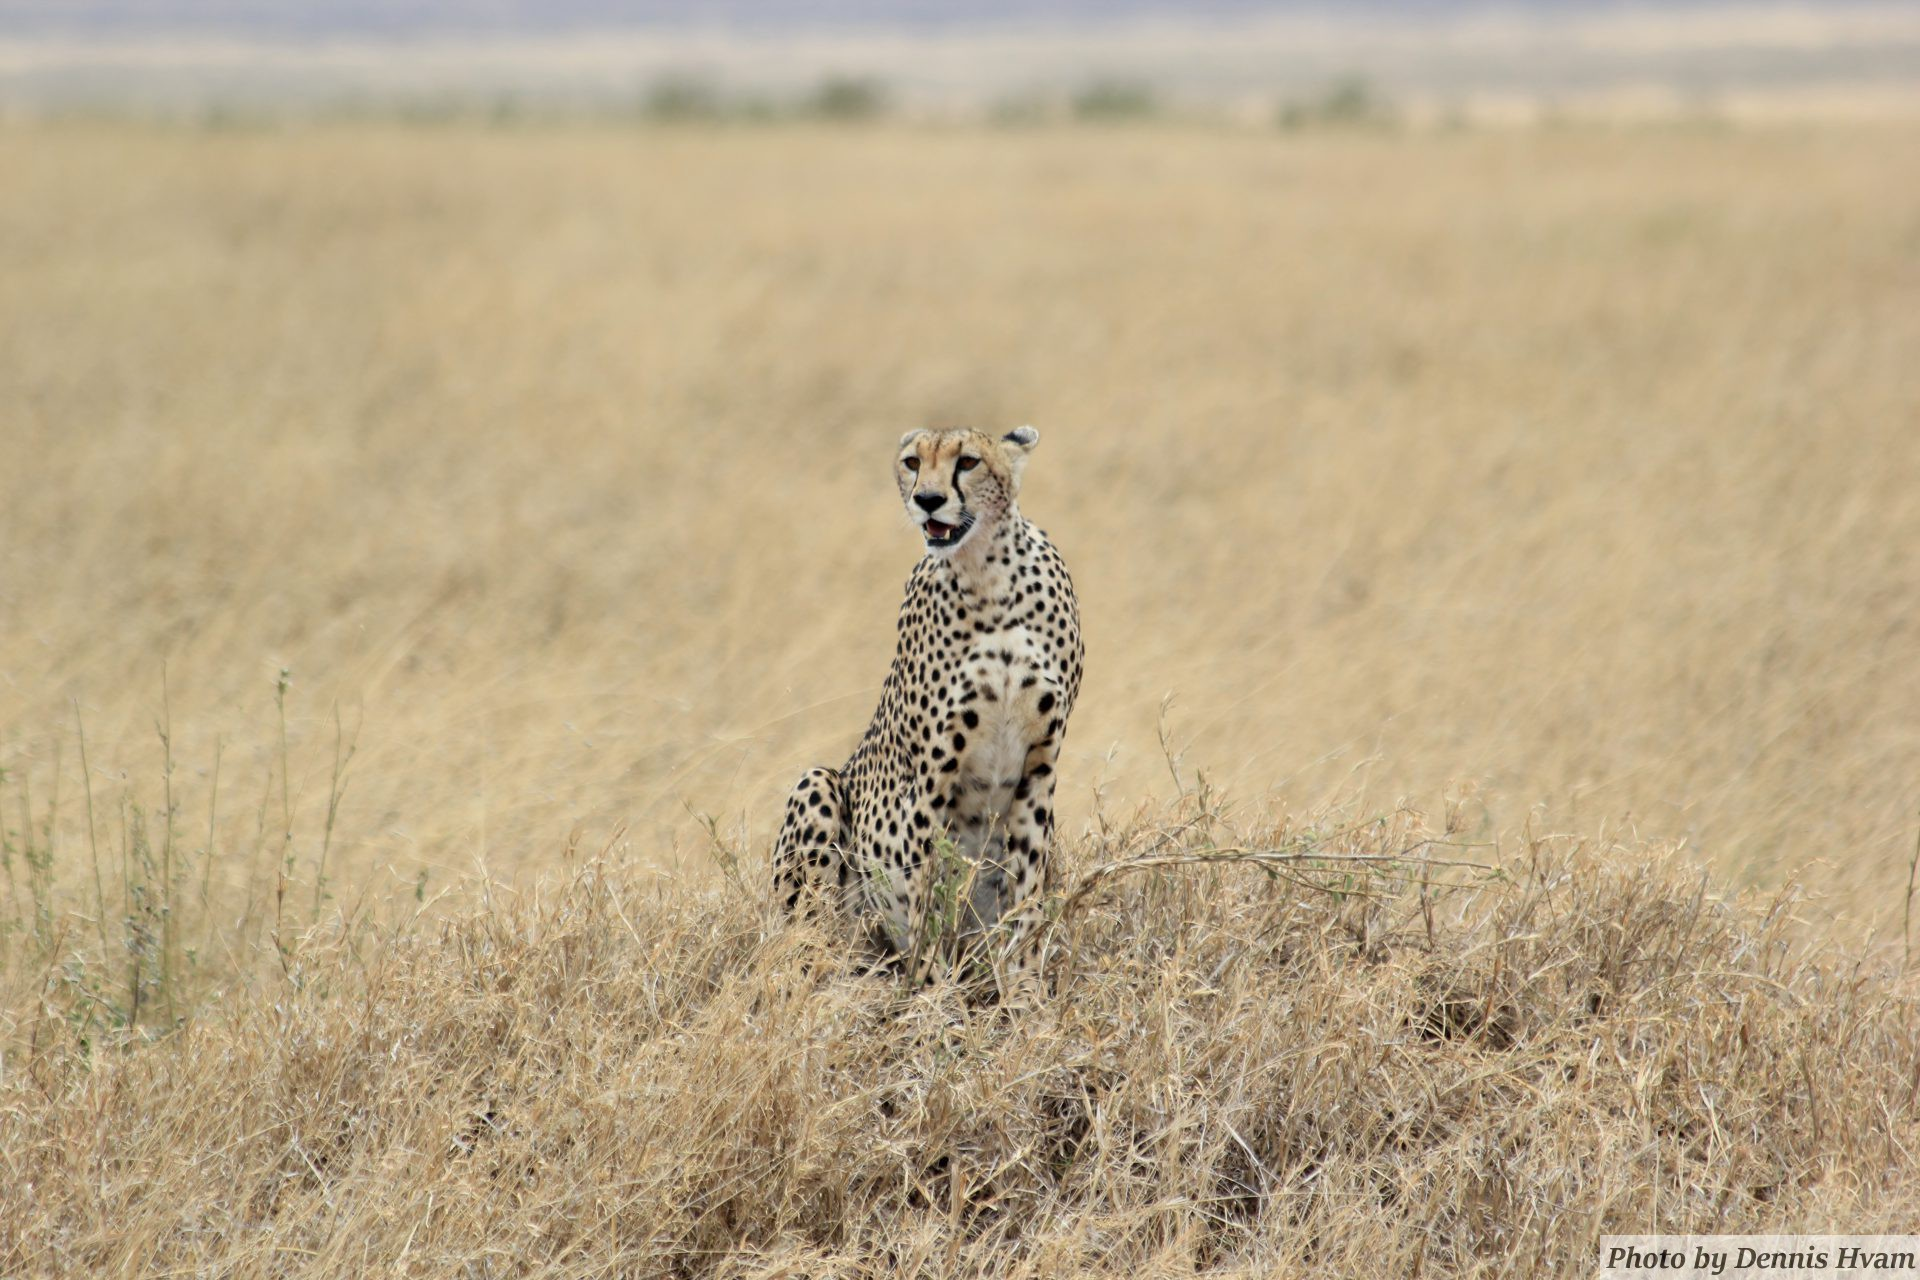 The African Cheetah – Click on the image for more